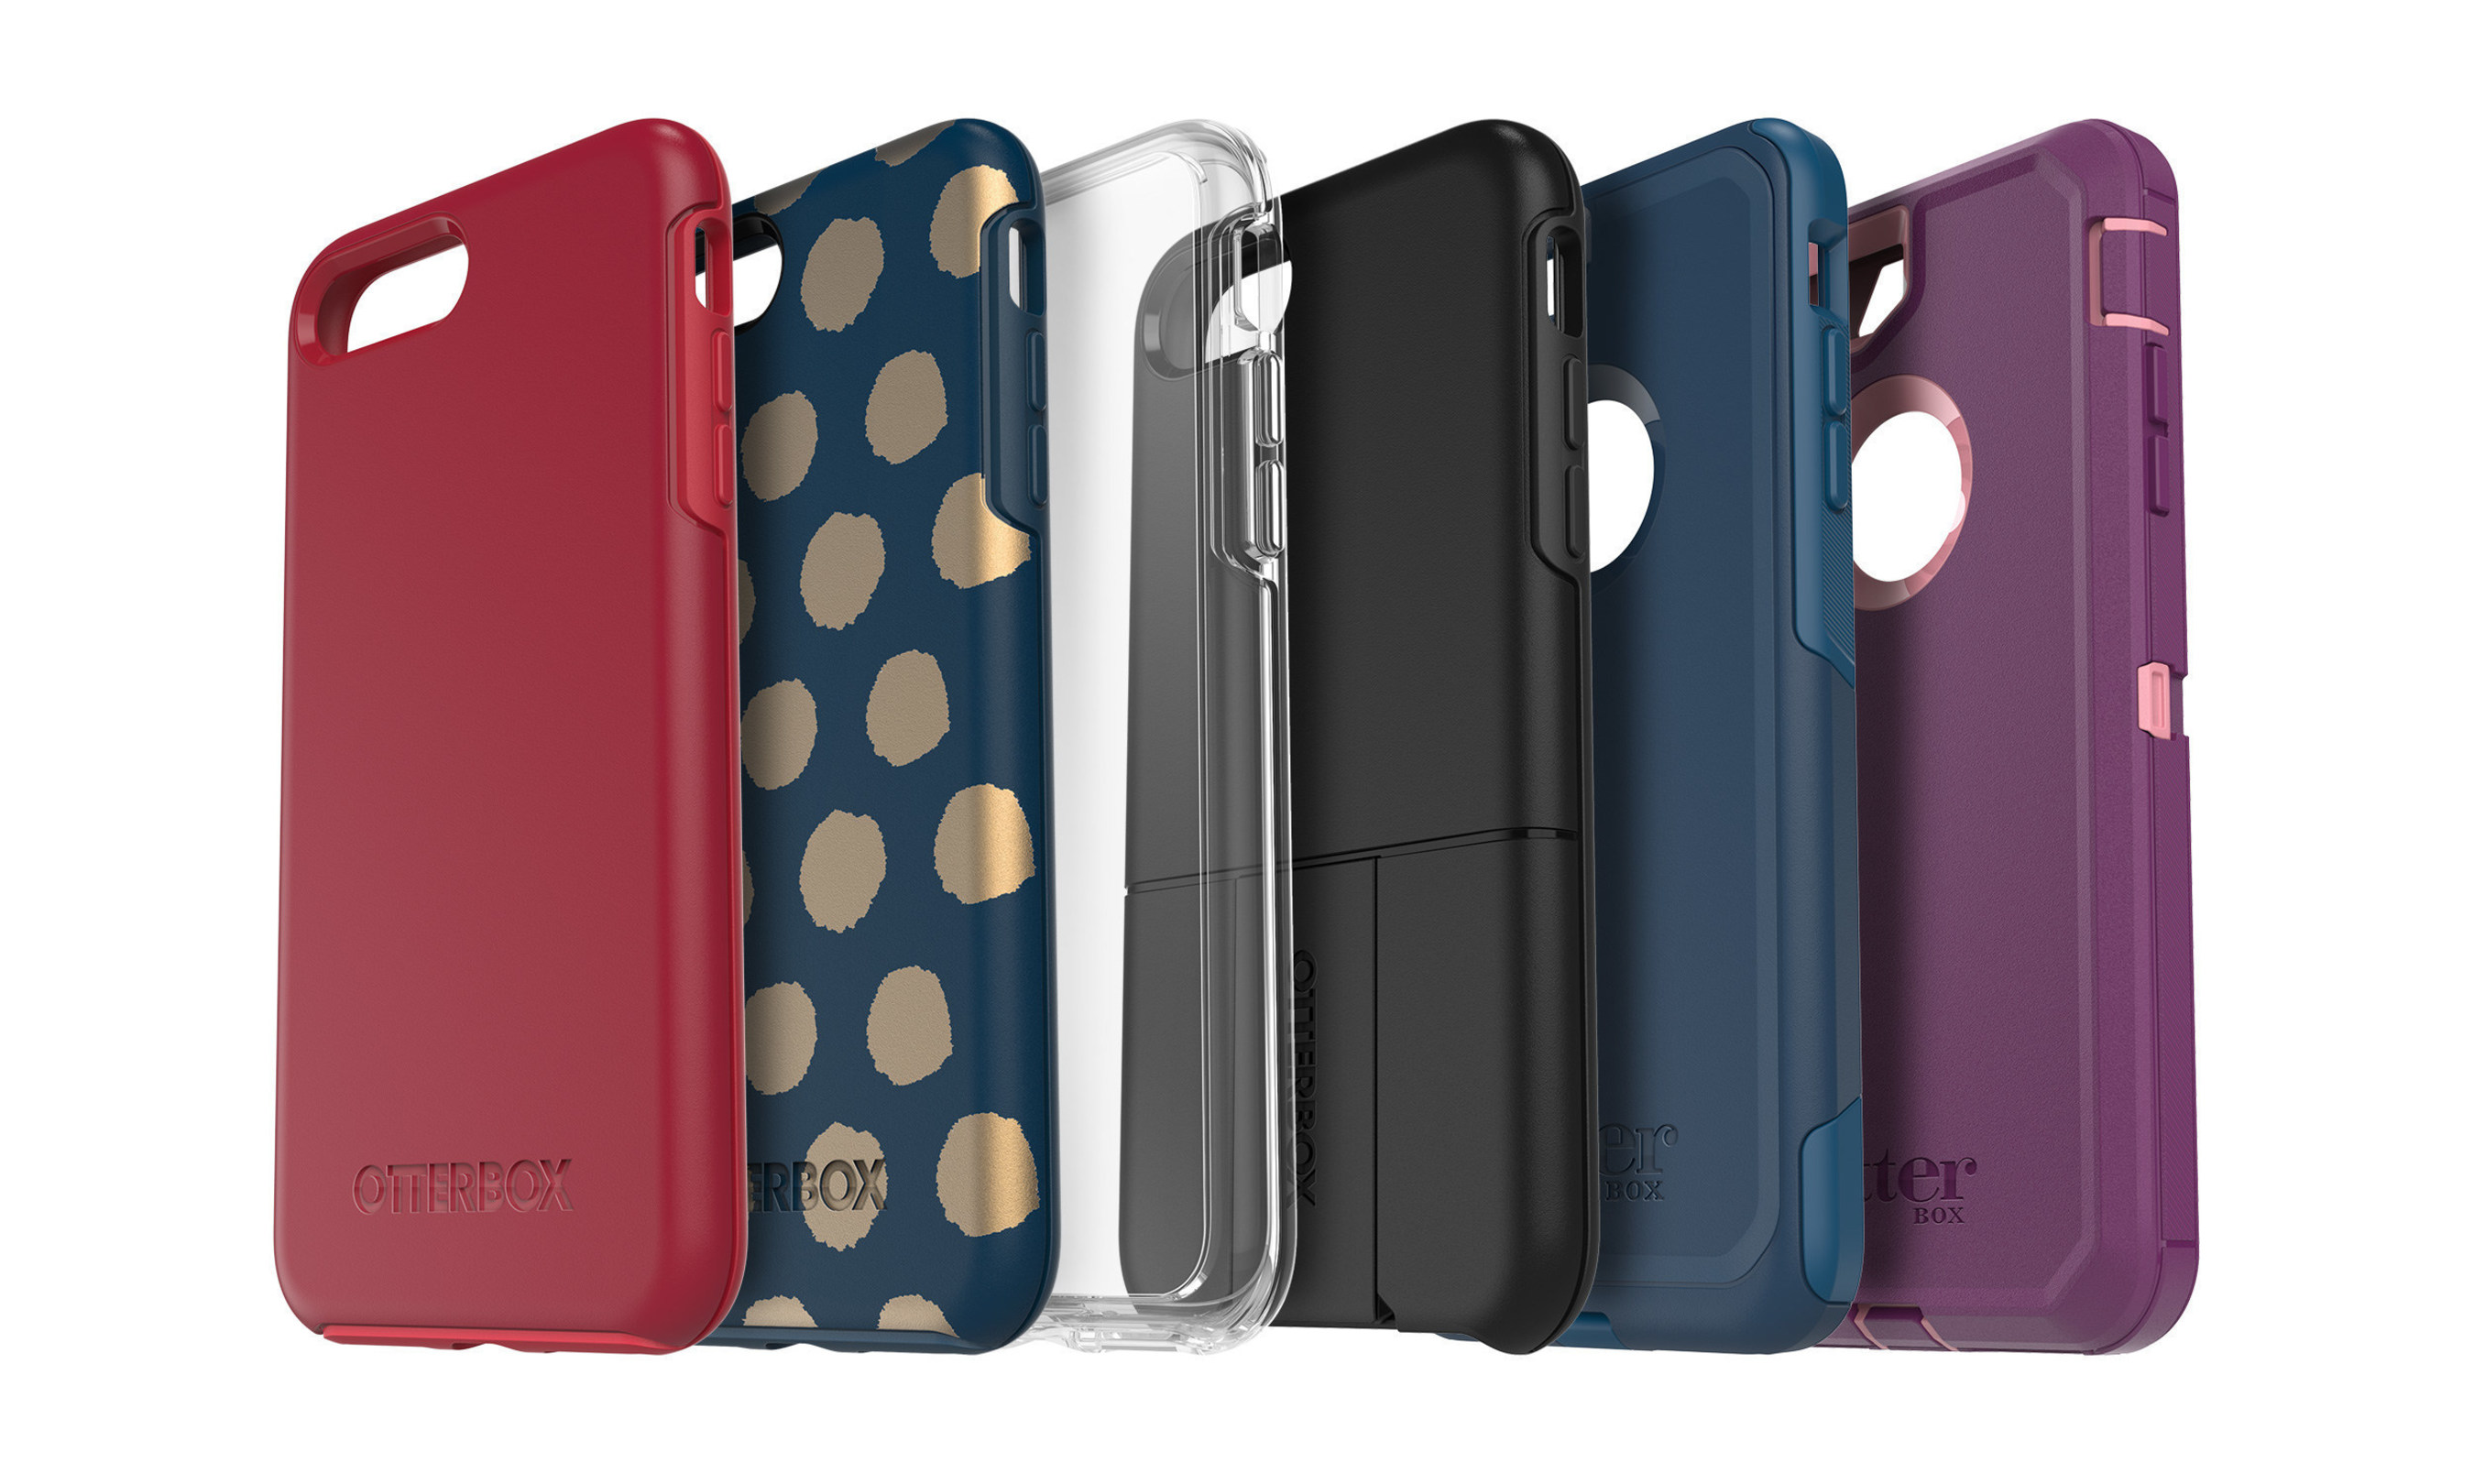 reputable site 504a3 ea69f OtterBox Offers Complete Line of Cases for Apple iPhone 7, iPhone 7 Plus